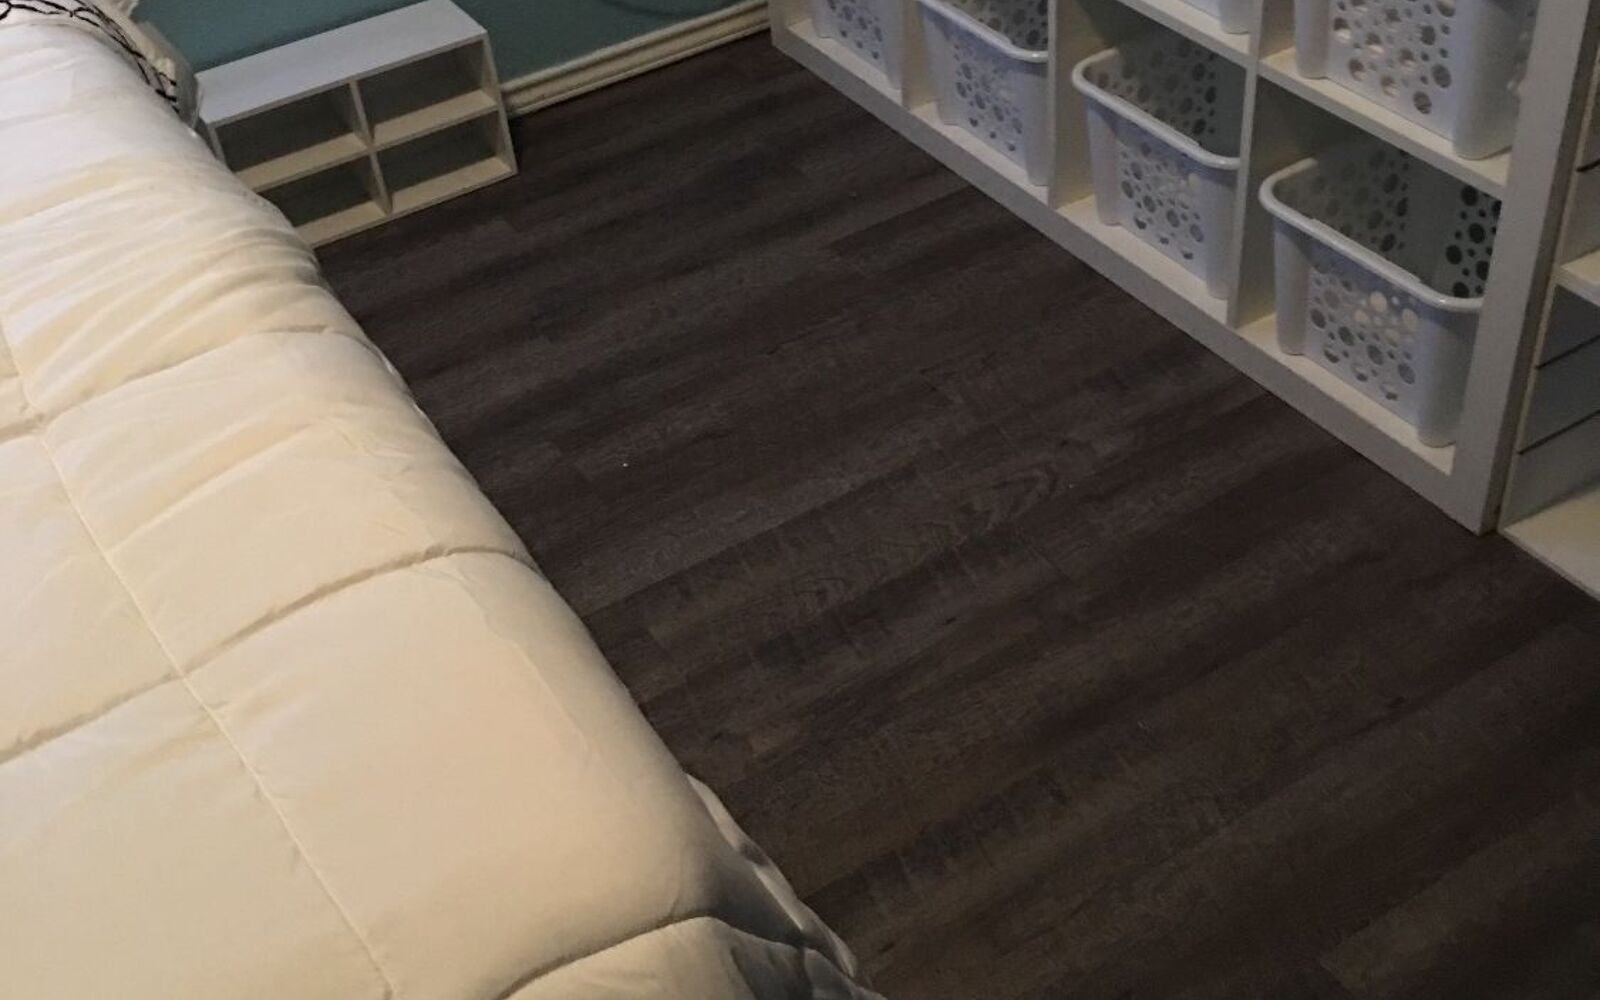 s 15 makeovers that will make you rethink your bedroom, For A New Look Peel And Stick On Vinyl Floor